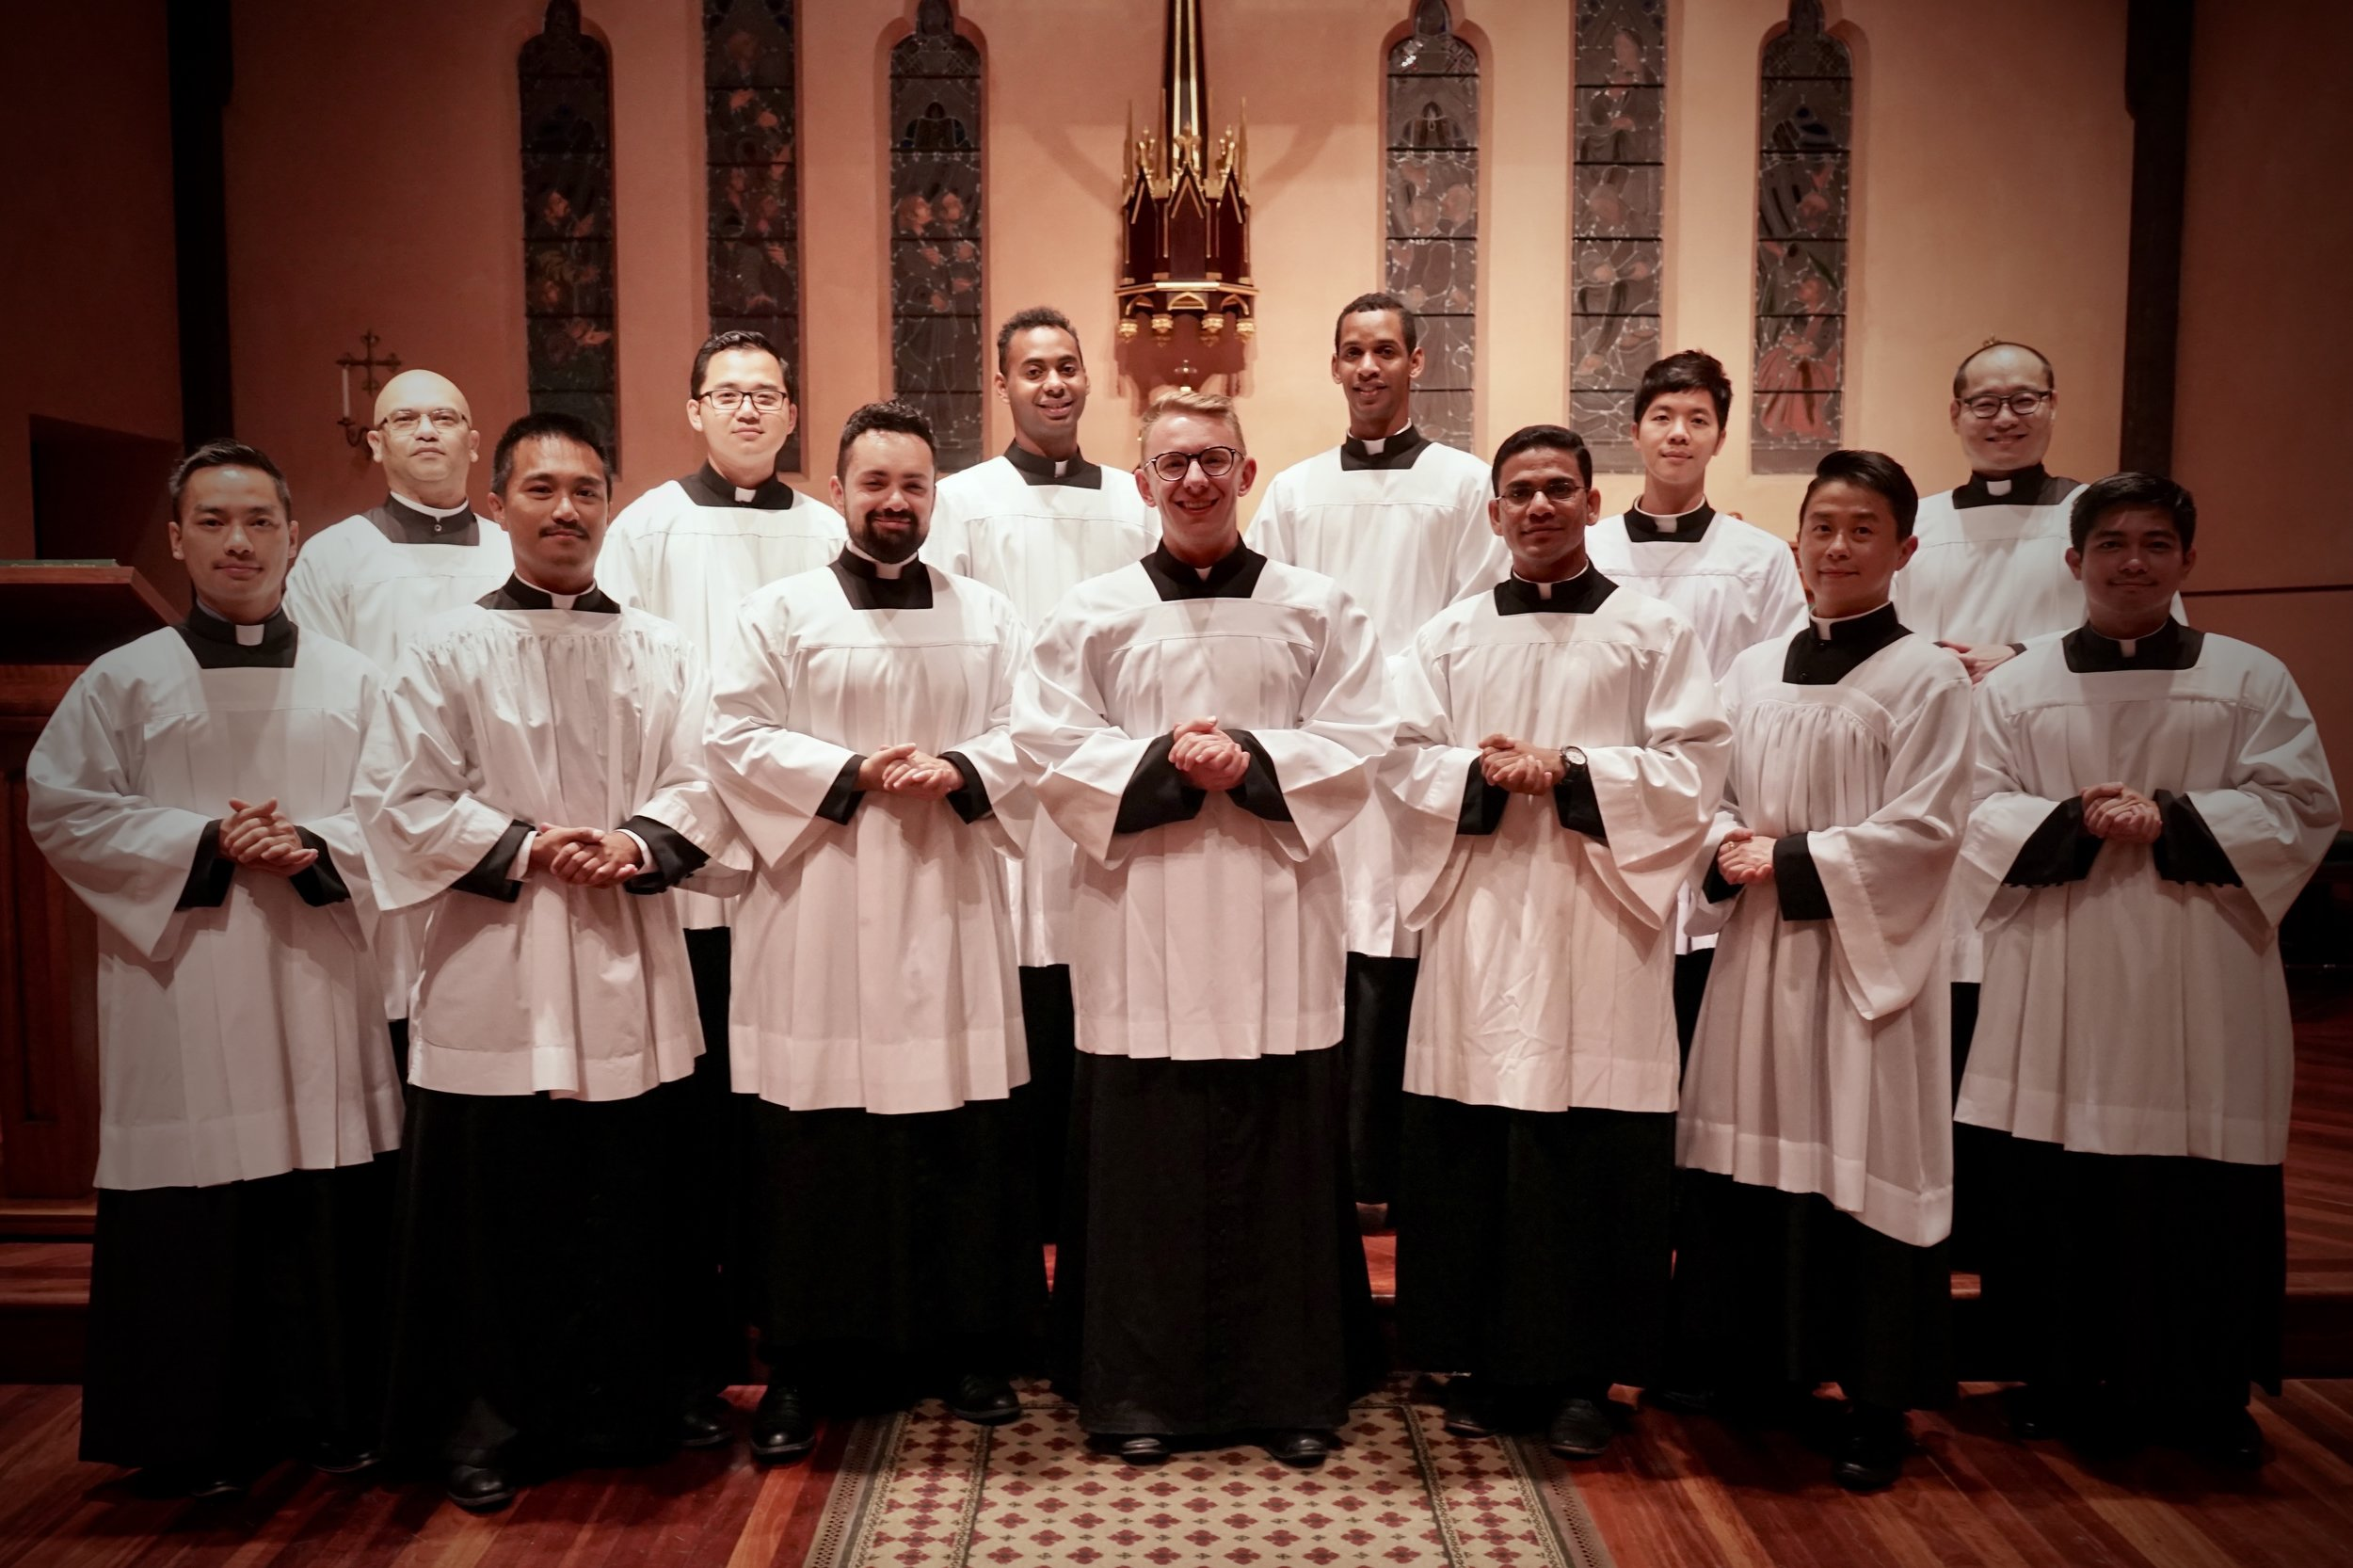 The seminary schola:      Back (left to right): Mark Hughes, Joseph Aung, Jean-Sebastien Gery, Chris Gery, Peter Nguyen and Matthias Kim.      Front (left to right): Tien Tran, Jaycee Napoles, Samuel Pearson, Olek Stirrat, Simeon Anthony, Andrew Choi and Allan Aclan.